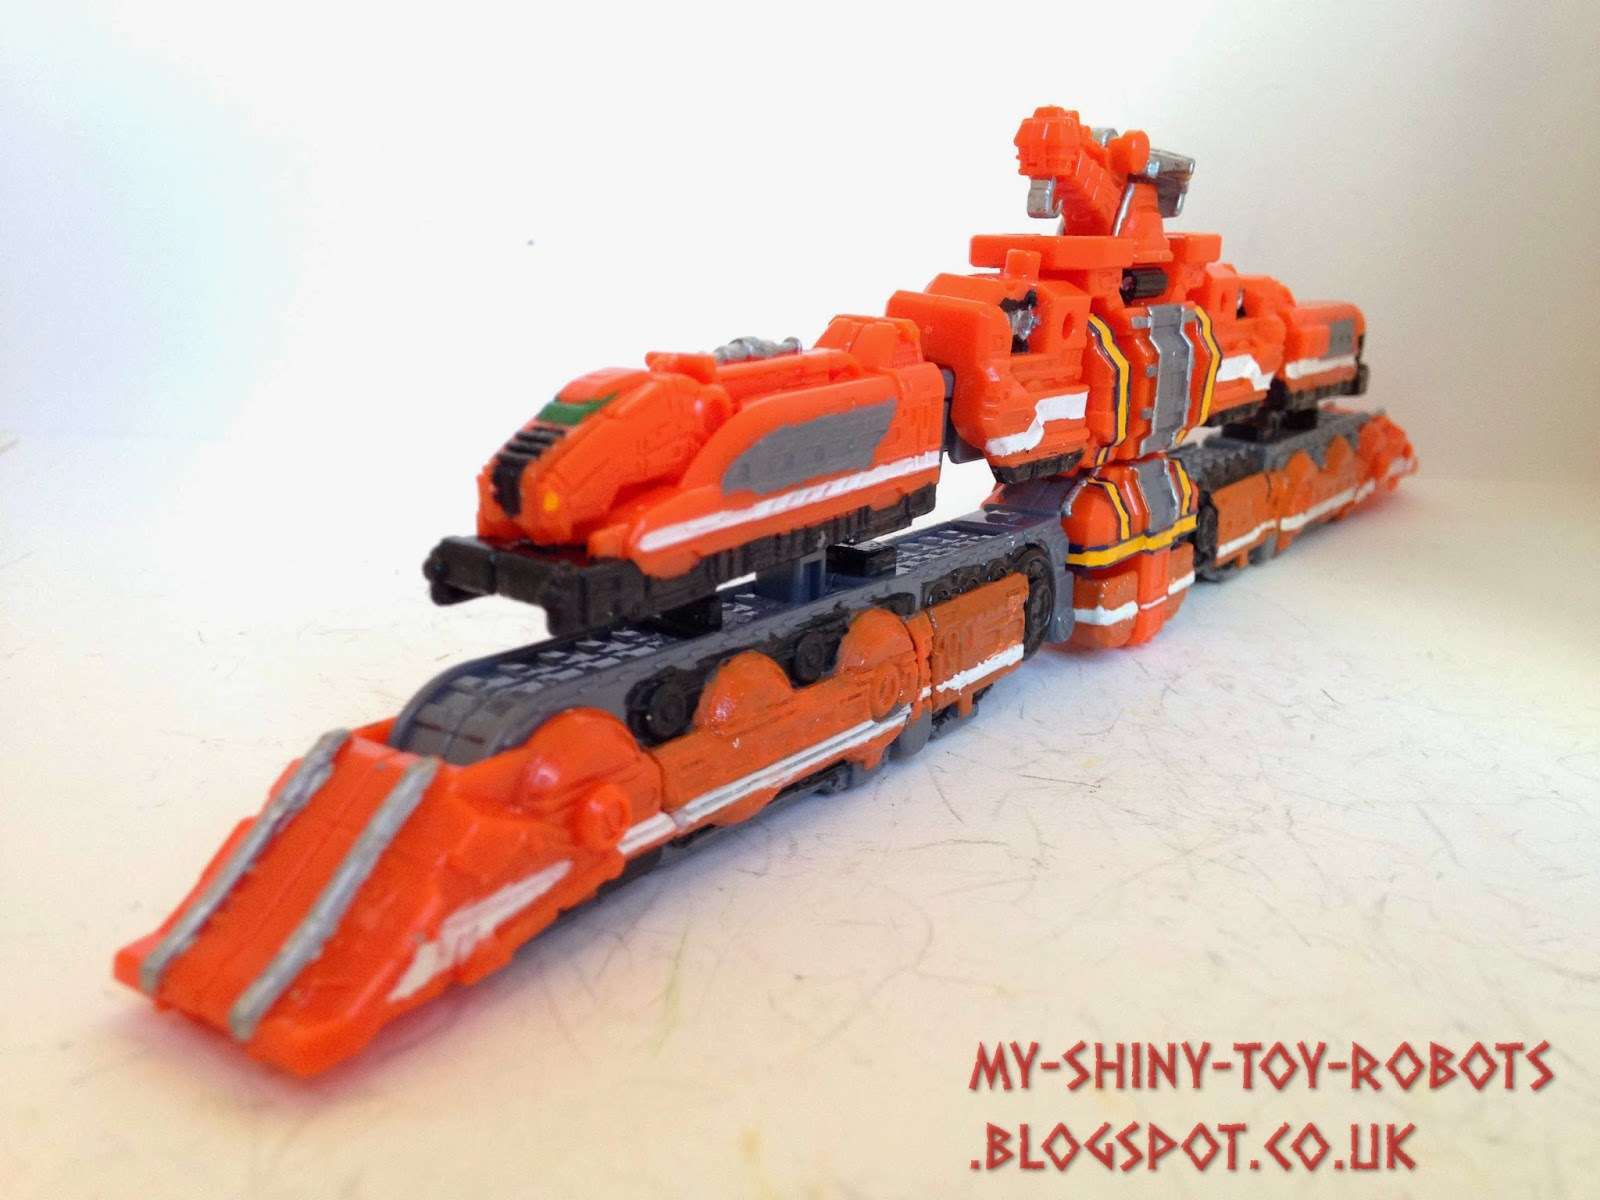 Up close with the Build Ressha